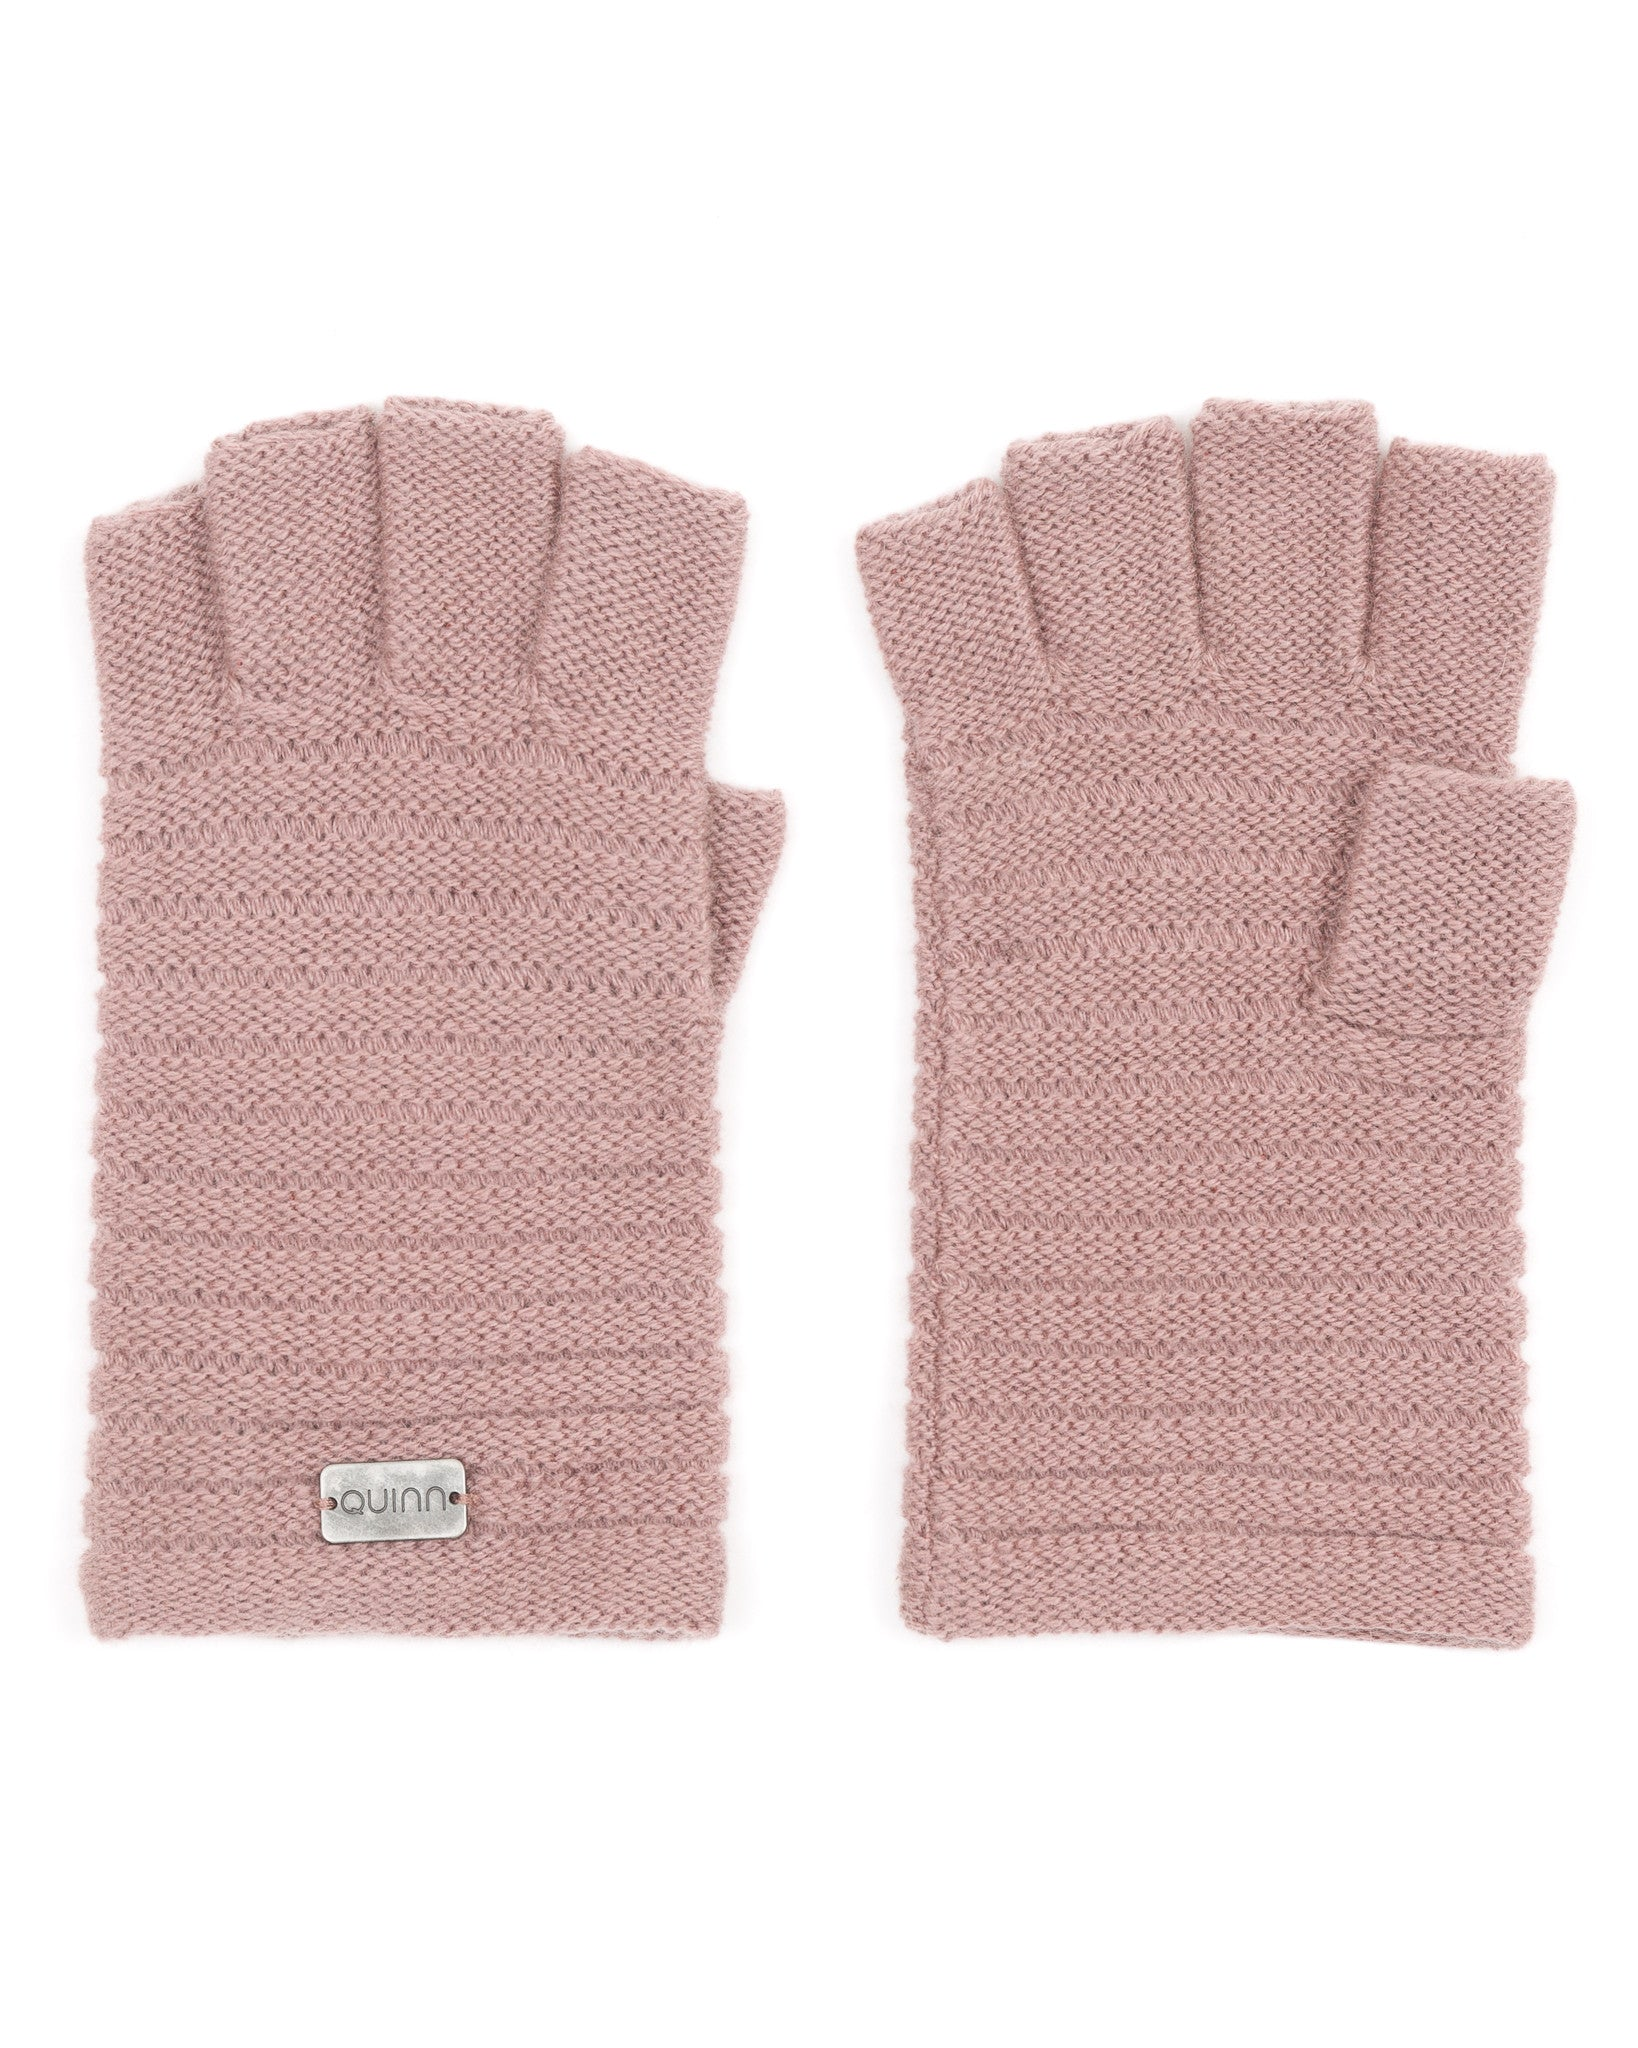 ACCESSORIES - Sullivan Dropped Needle Fingerless Glove